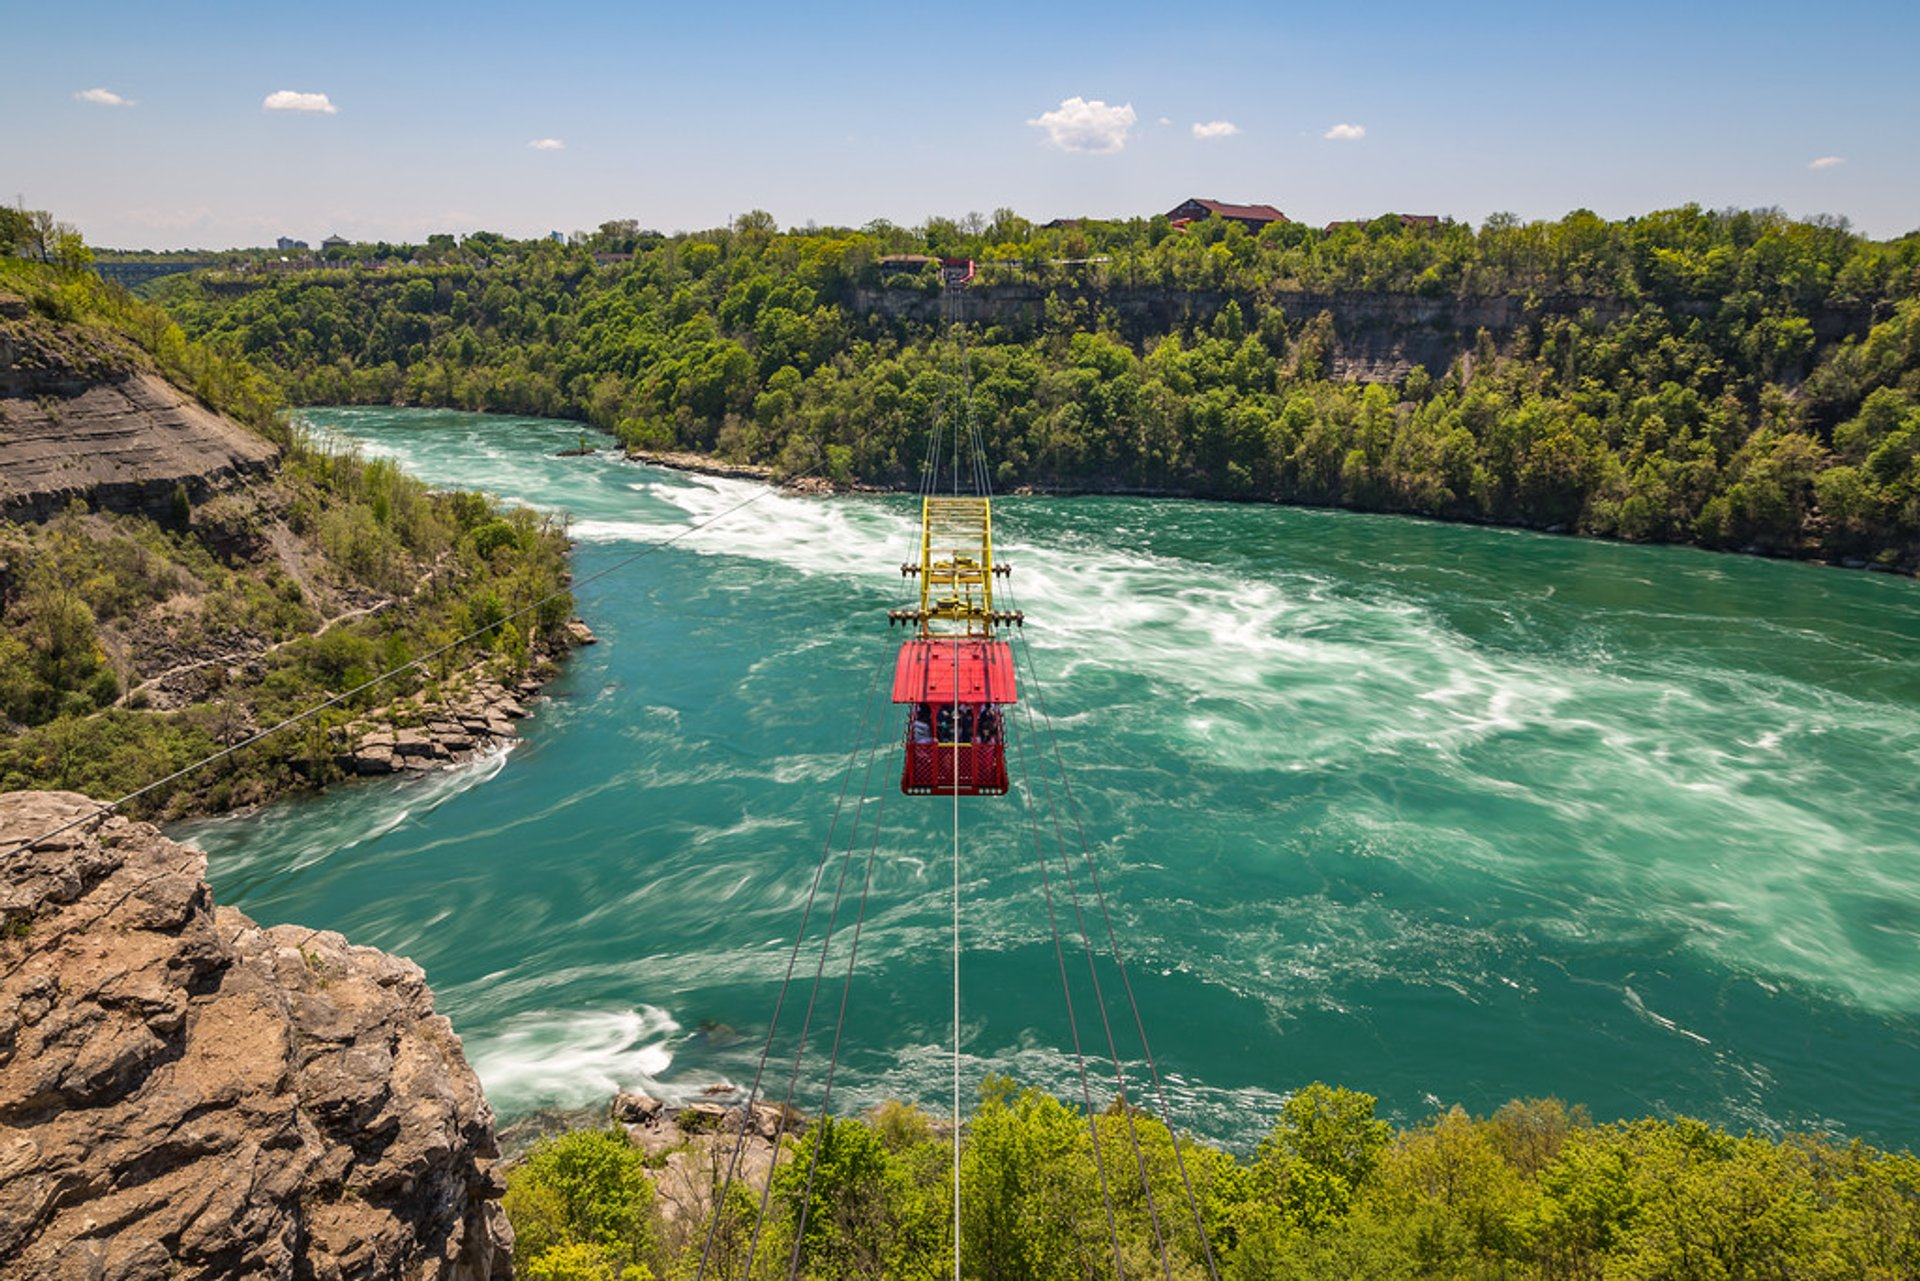 Whirlpool Aero Car in Niagara Falls - Best Season 2020